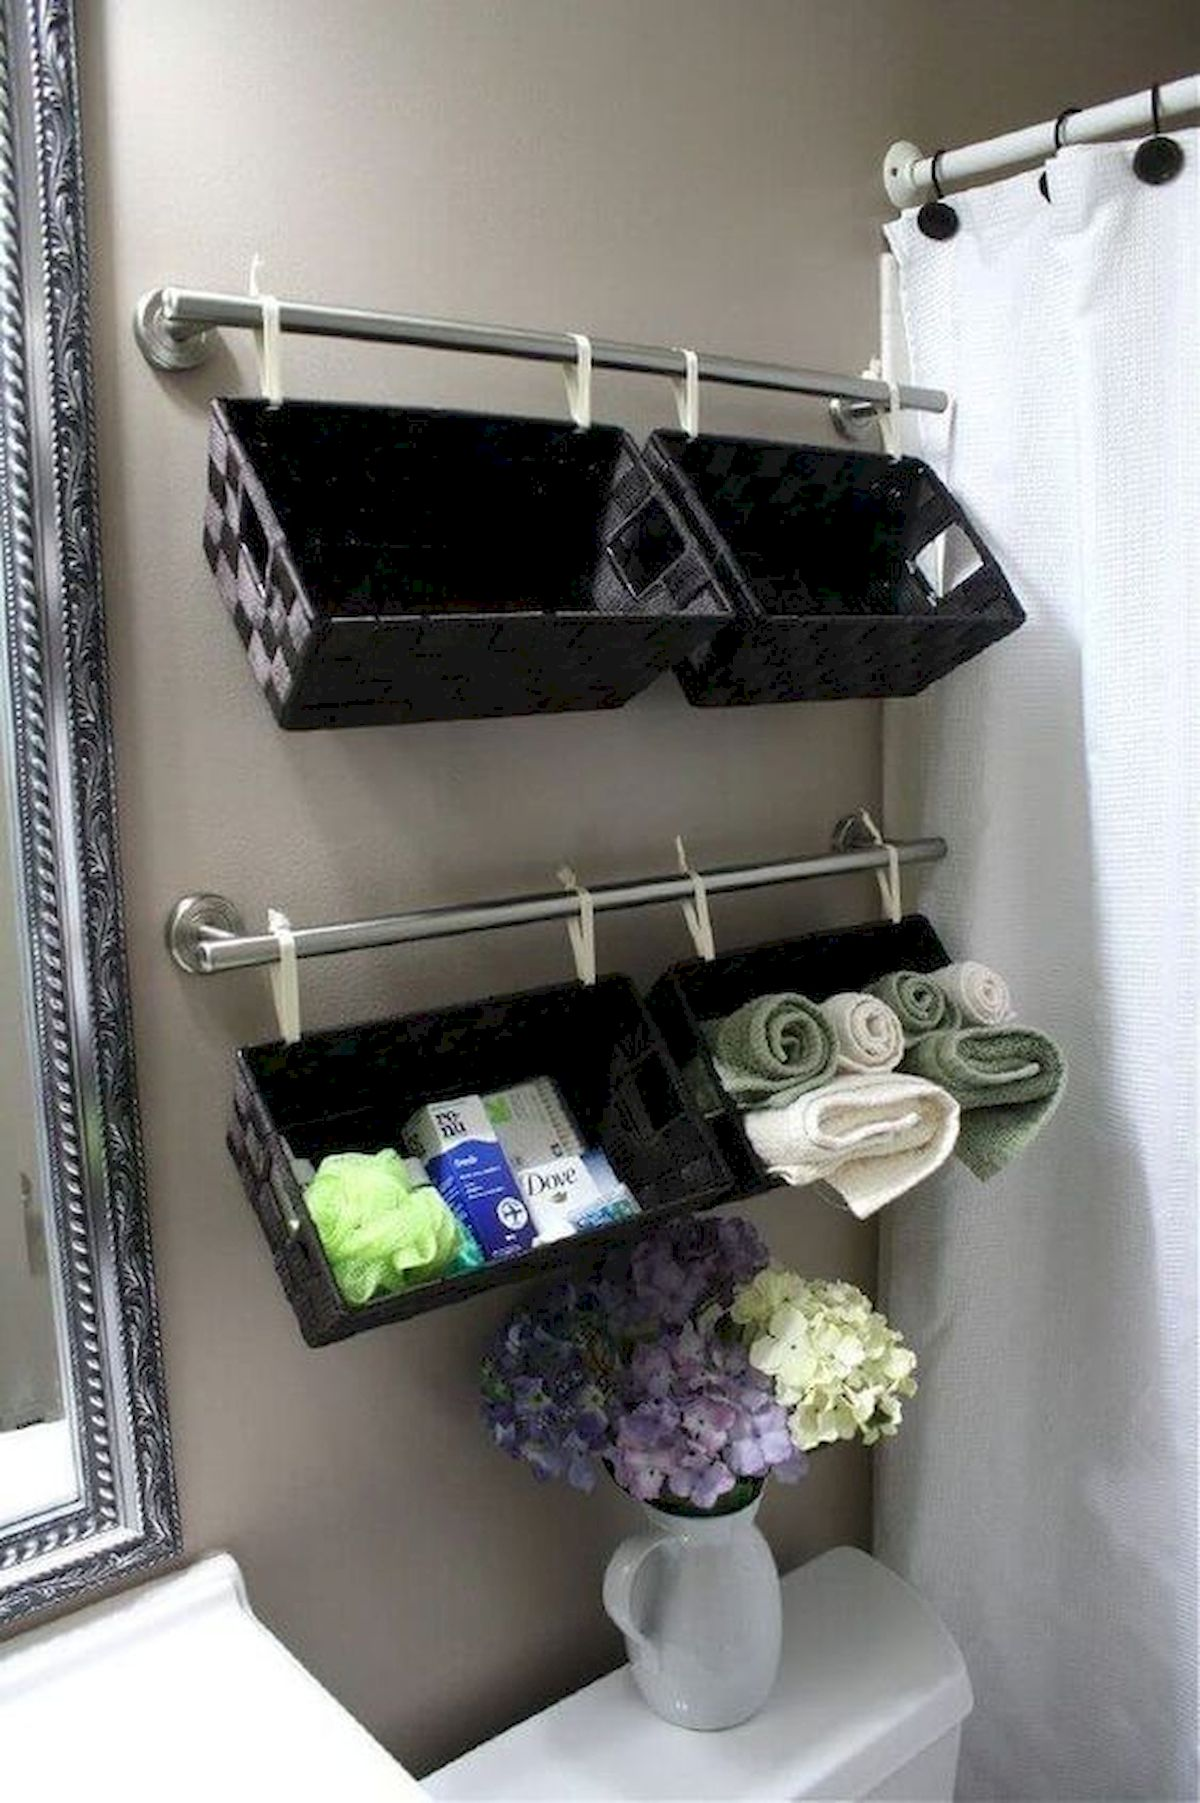 50 Best DIY Storage Design Ideas to Maximize Your Small Bathroom Space (15)